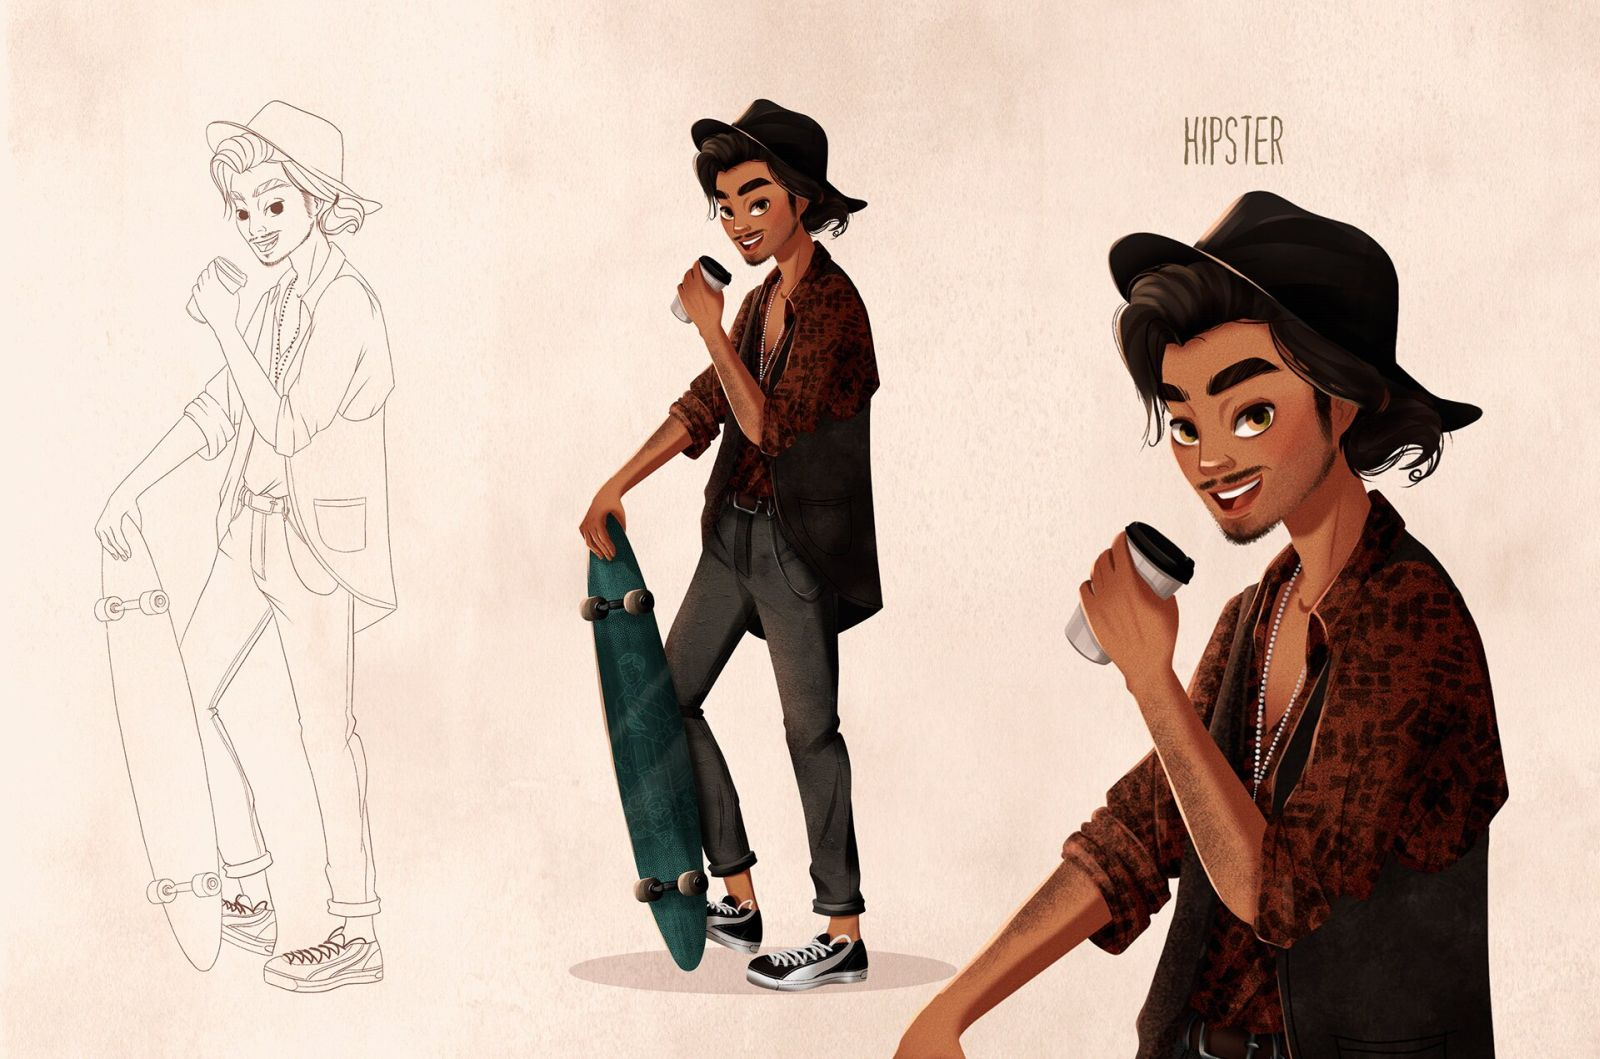 character design illustration hipster